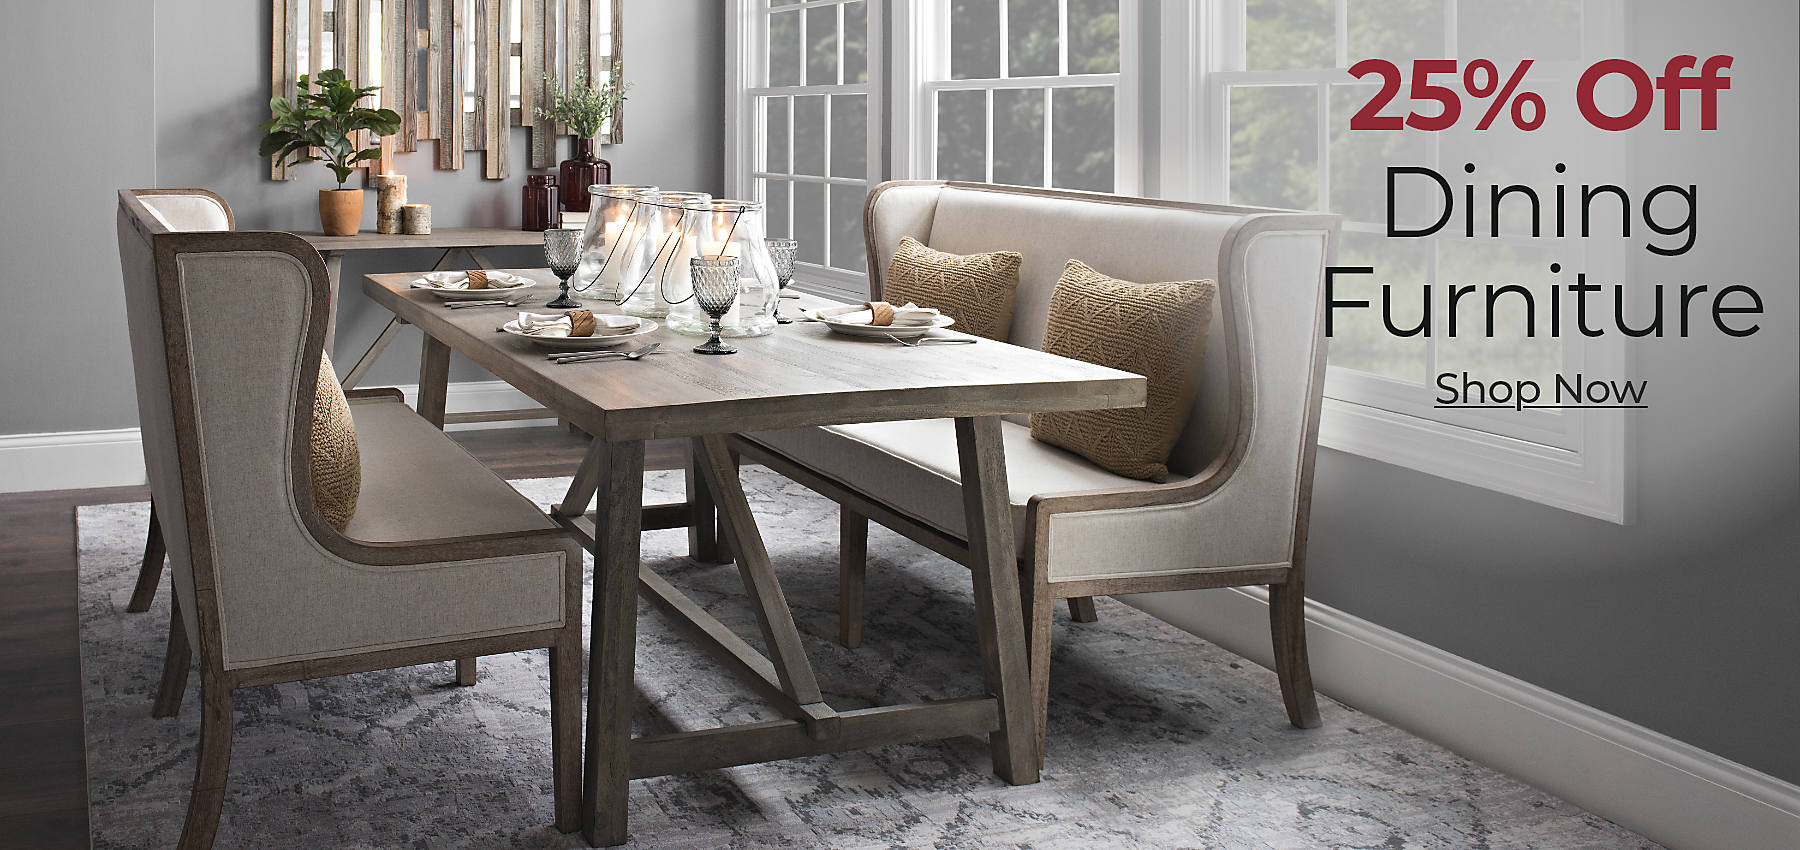 Up to 25% Off All Dining Furniture Shop Now